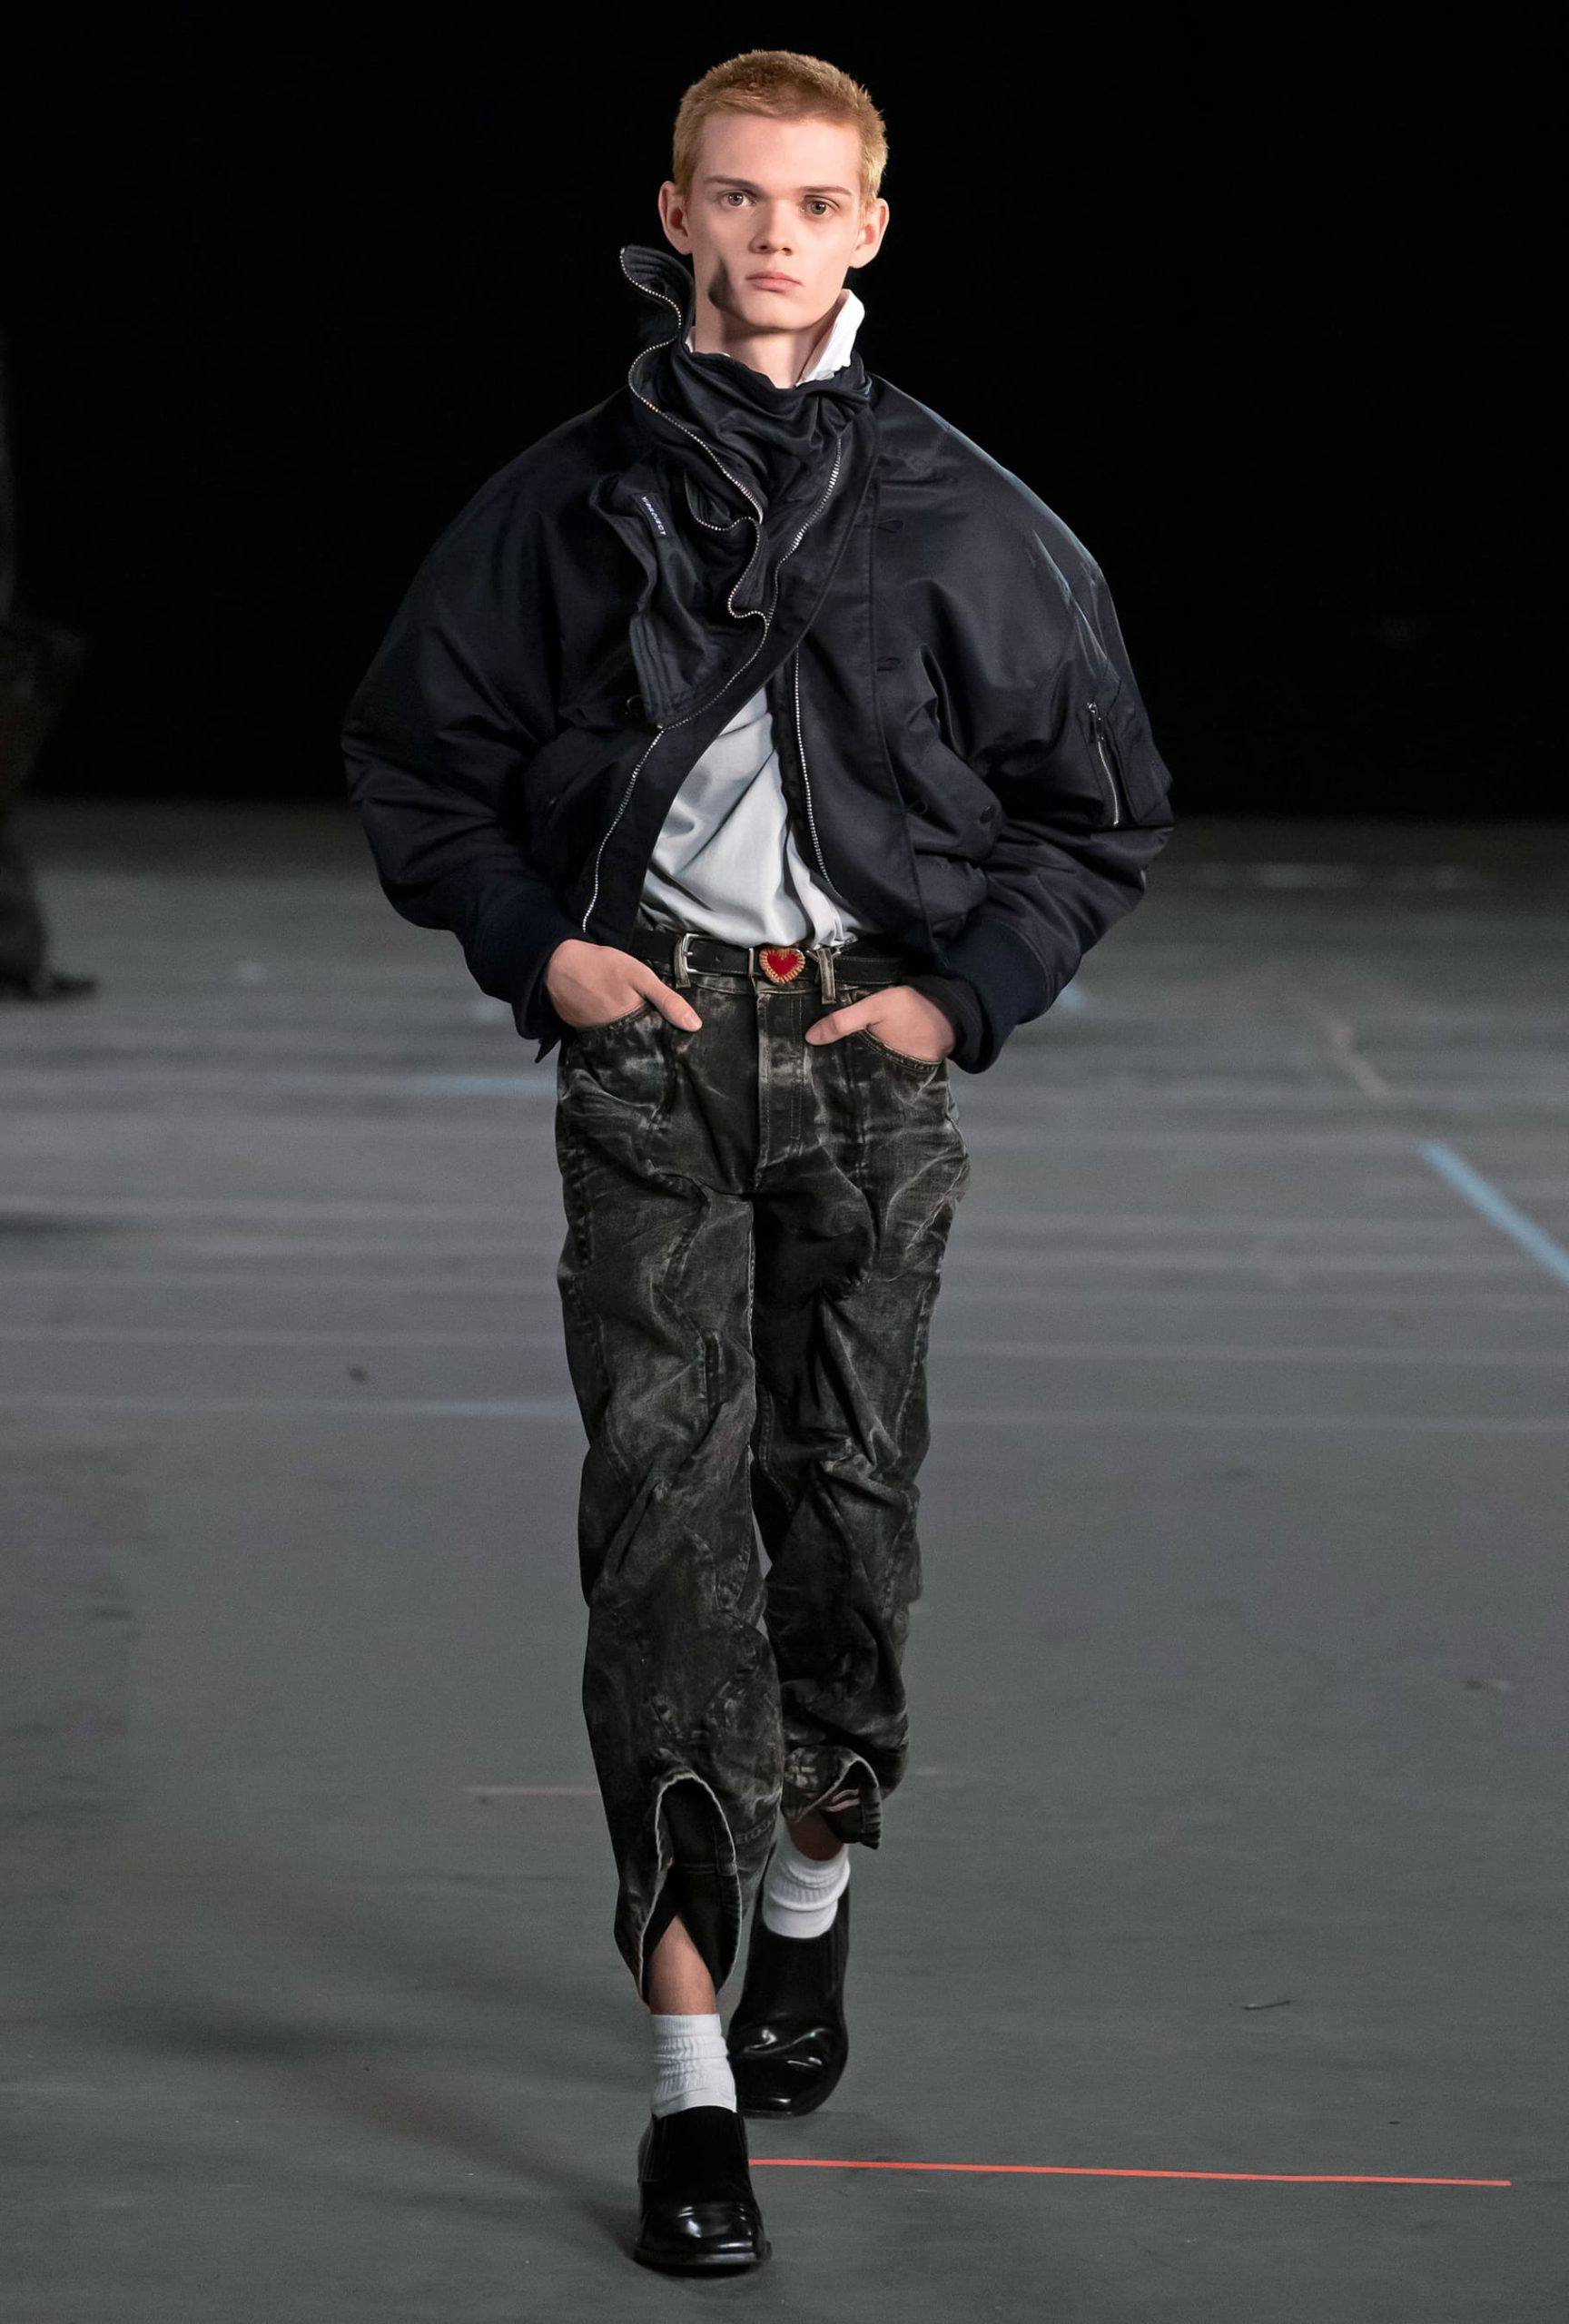 Review of Jil Sander, Y/Project, Lemaire, Alled-Martinez, 11017 Alyx 9SM Fall 2021 Men's Fashion Shows